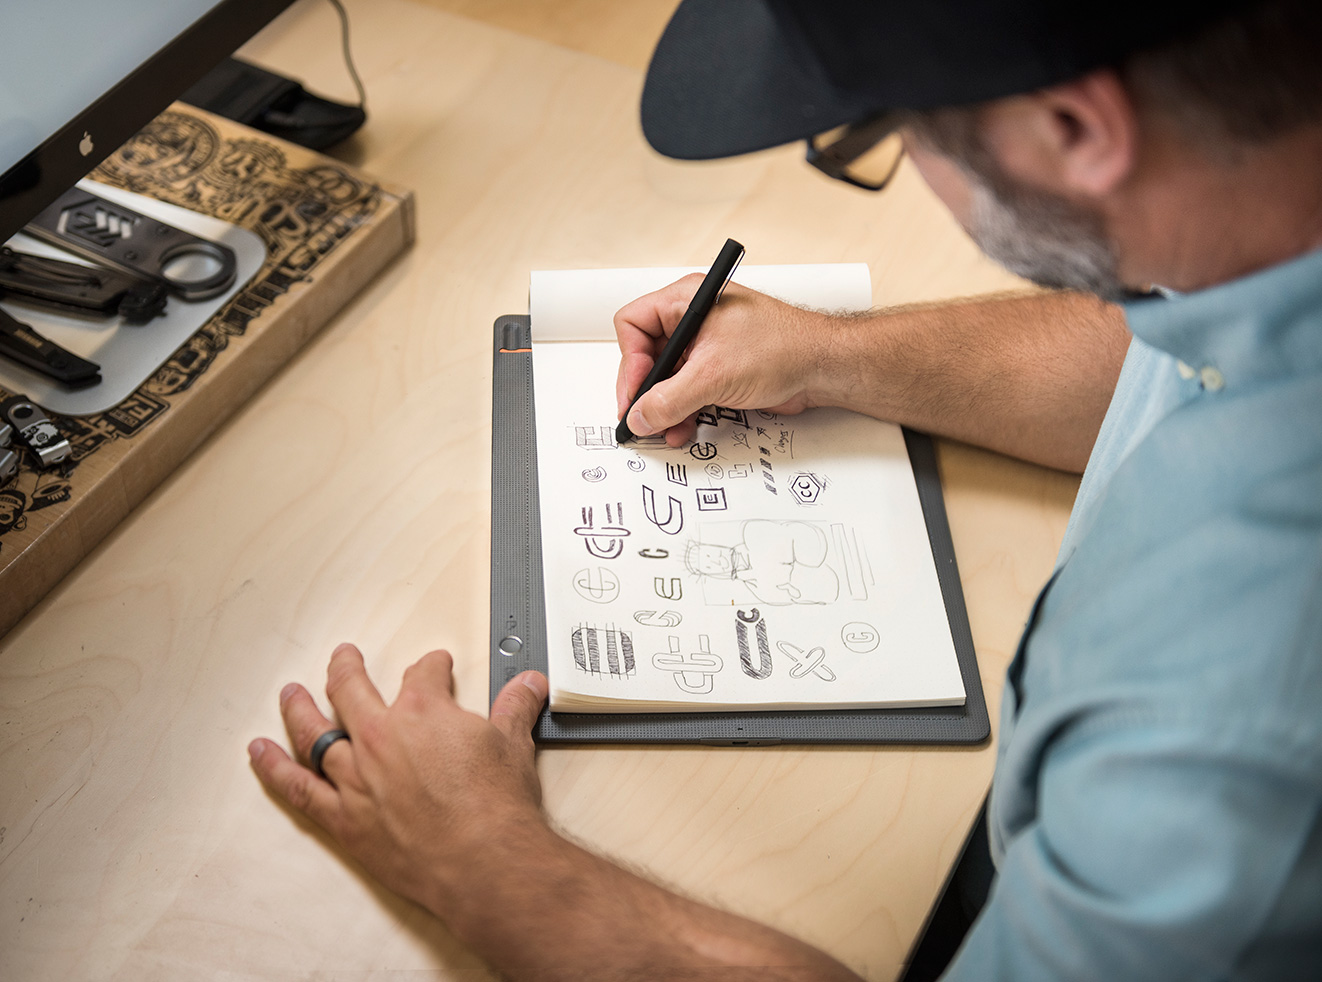 Lincoln Design Co. using Bamboo Slate and an Intuos Pro in their brand design work.